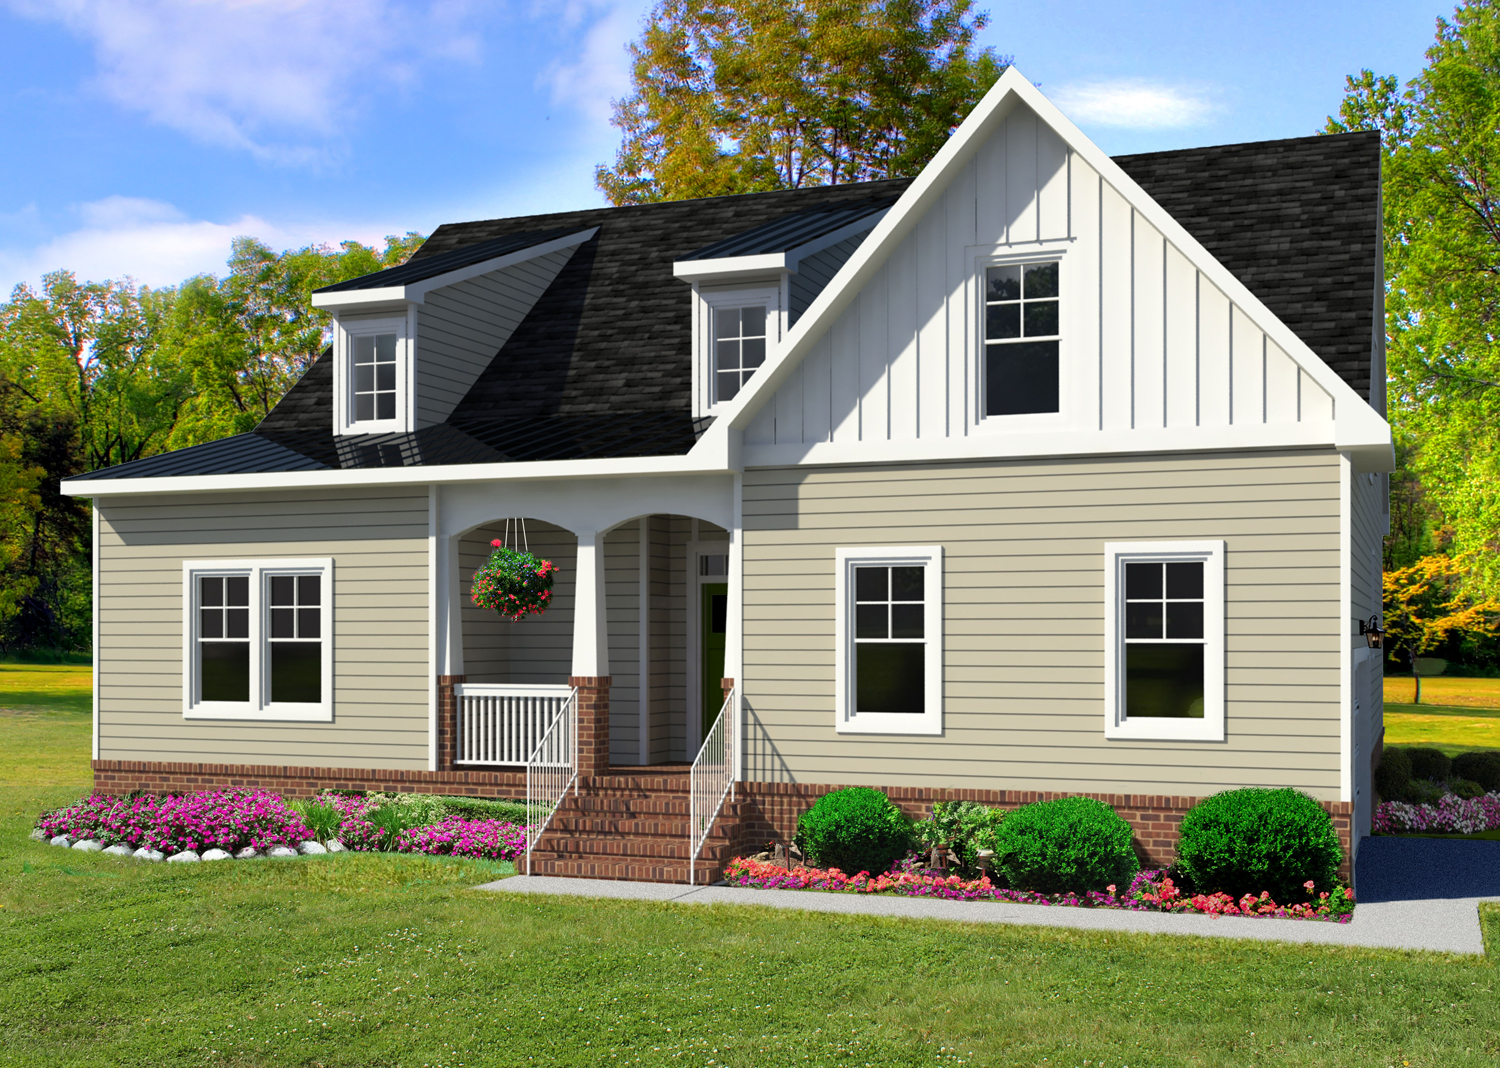 The Evergreen Model custom new home Suffolk VA with AB Homes with tan siding and white trim